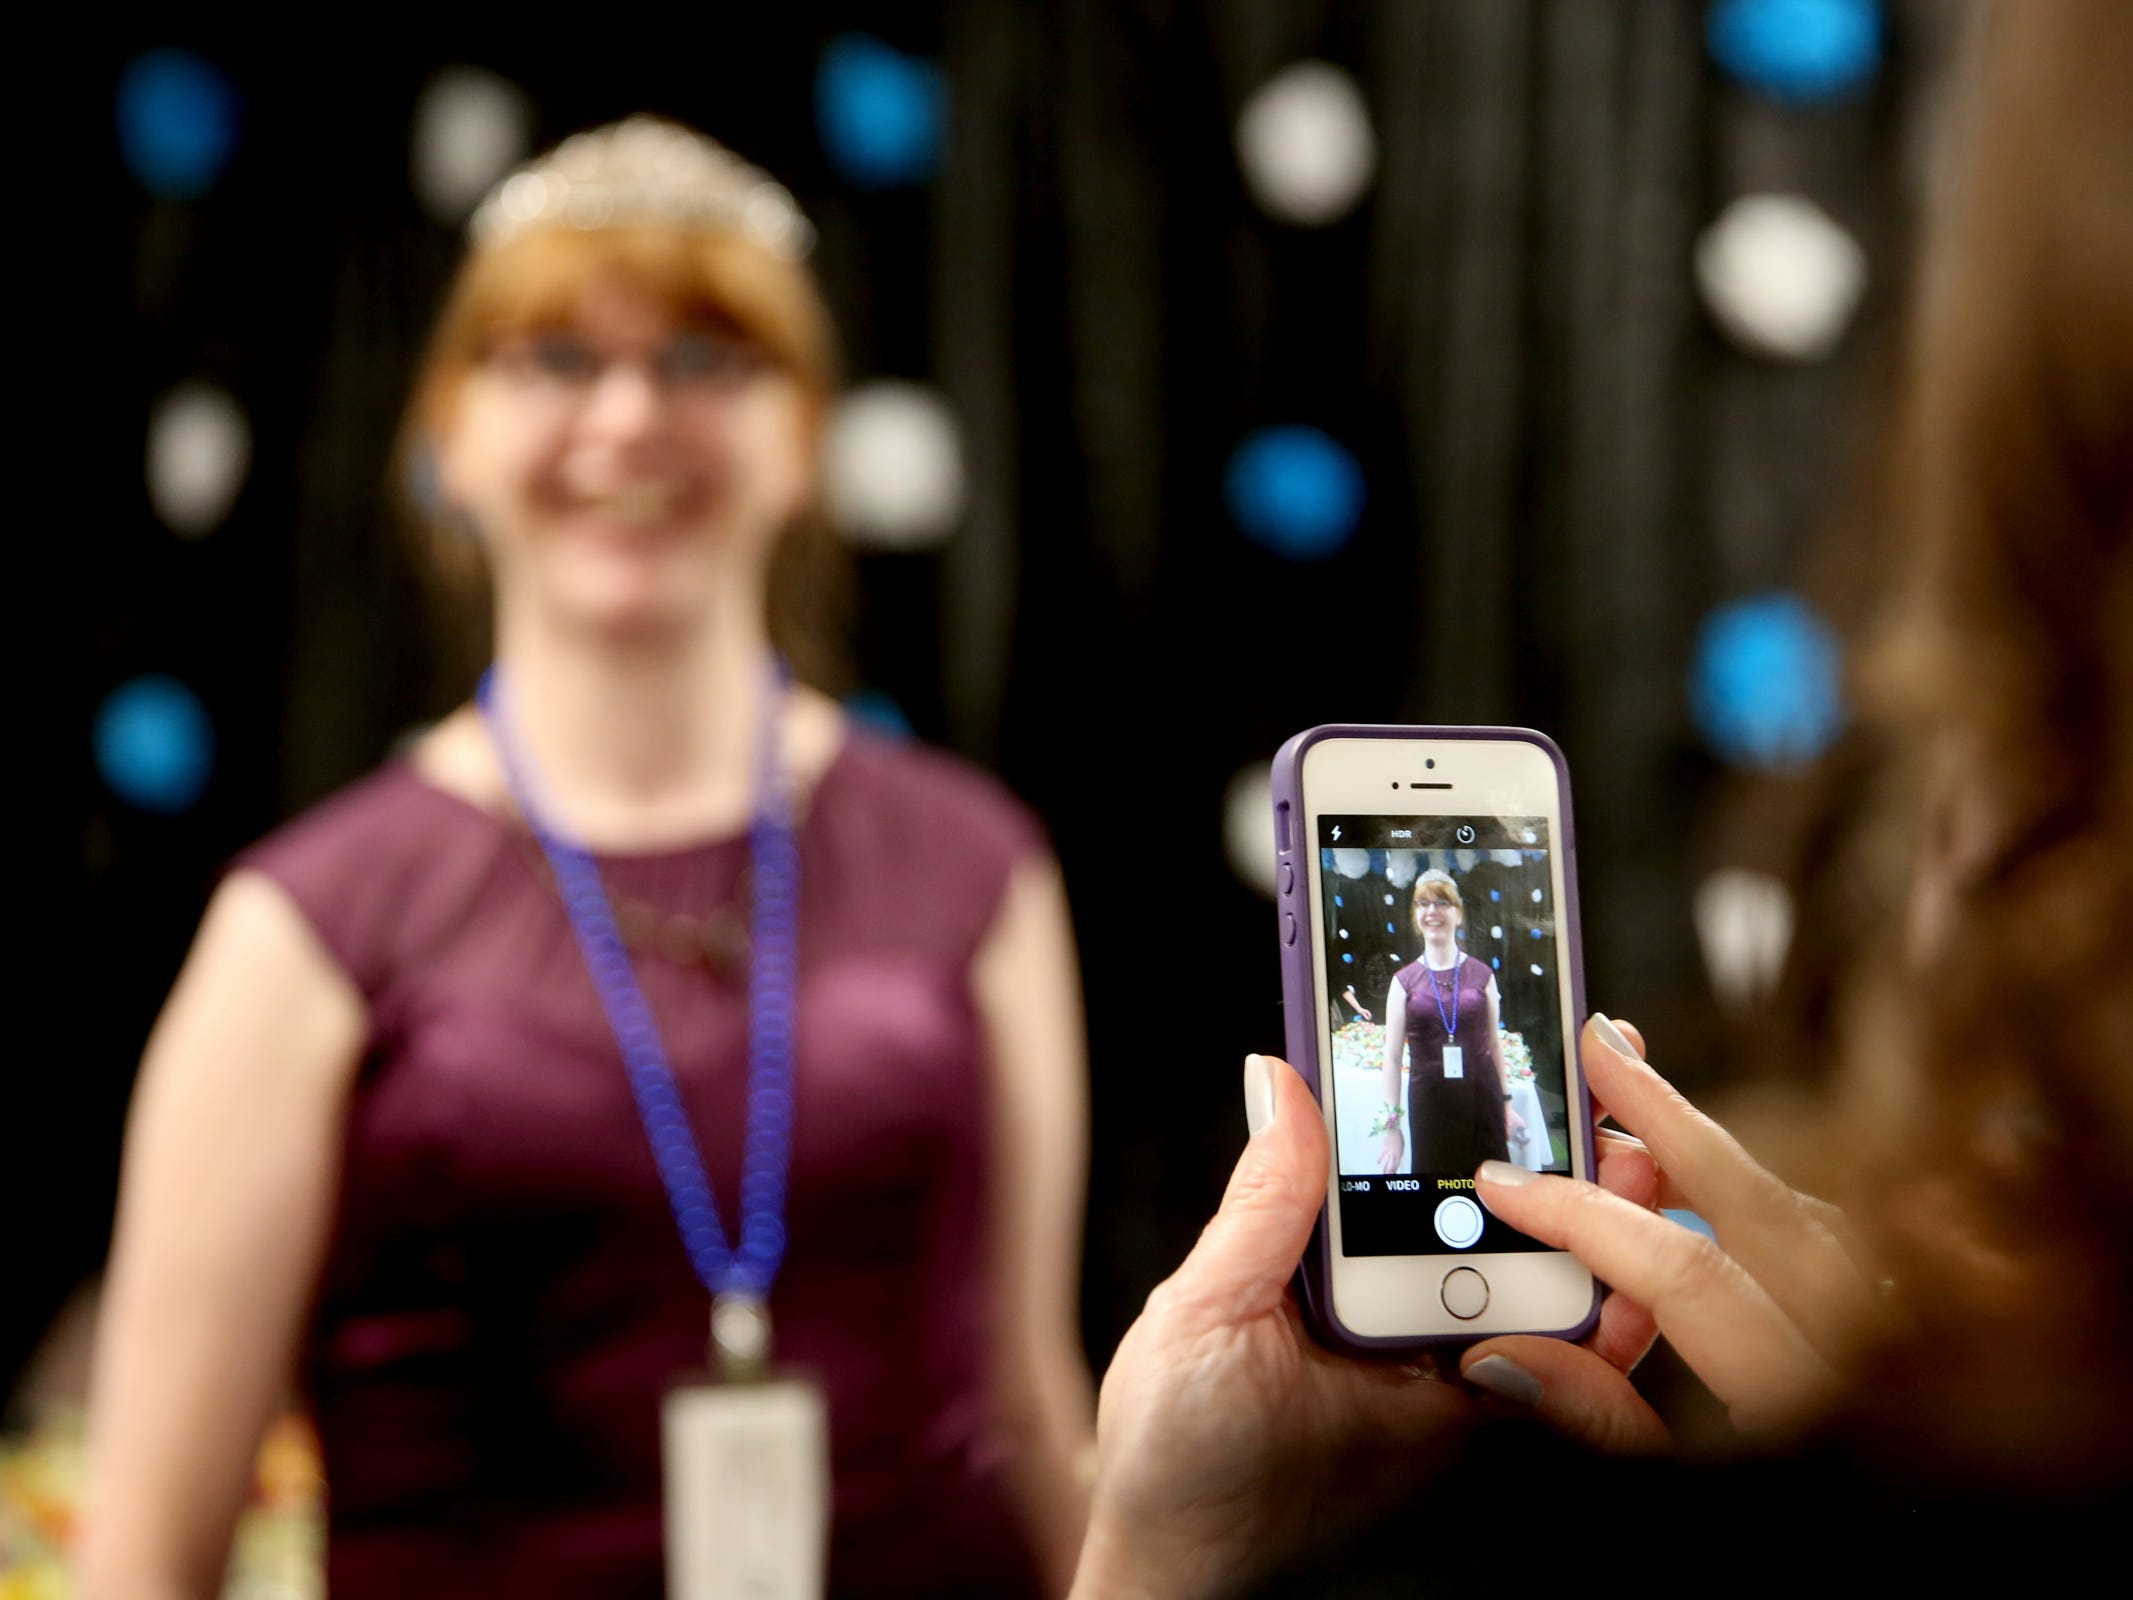 Volunteer Joy Biondi, of Keizer, takes a photo of her designated partner, Kris Burden, of Salem, during Night to Shine, a prom night experience for people with special needs, at Salem Alliance Church on Friday, Feb. 8, 2019.